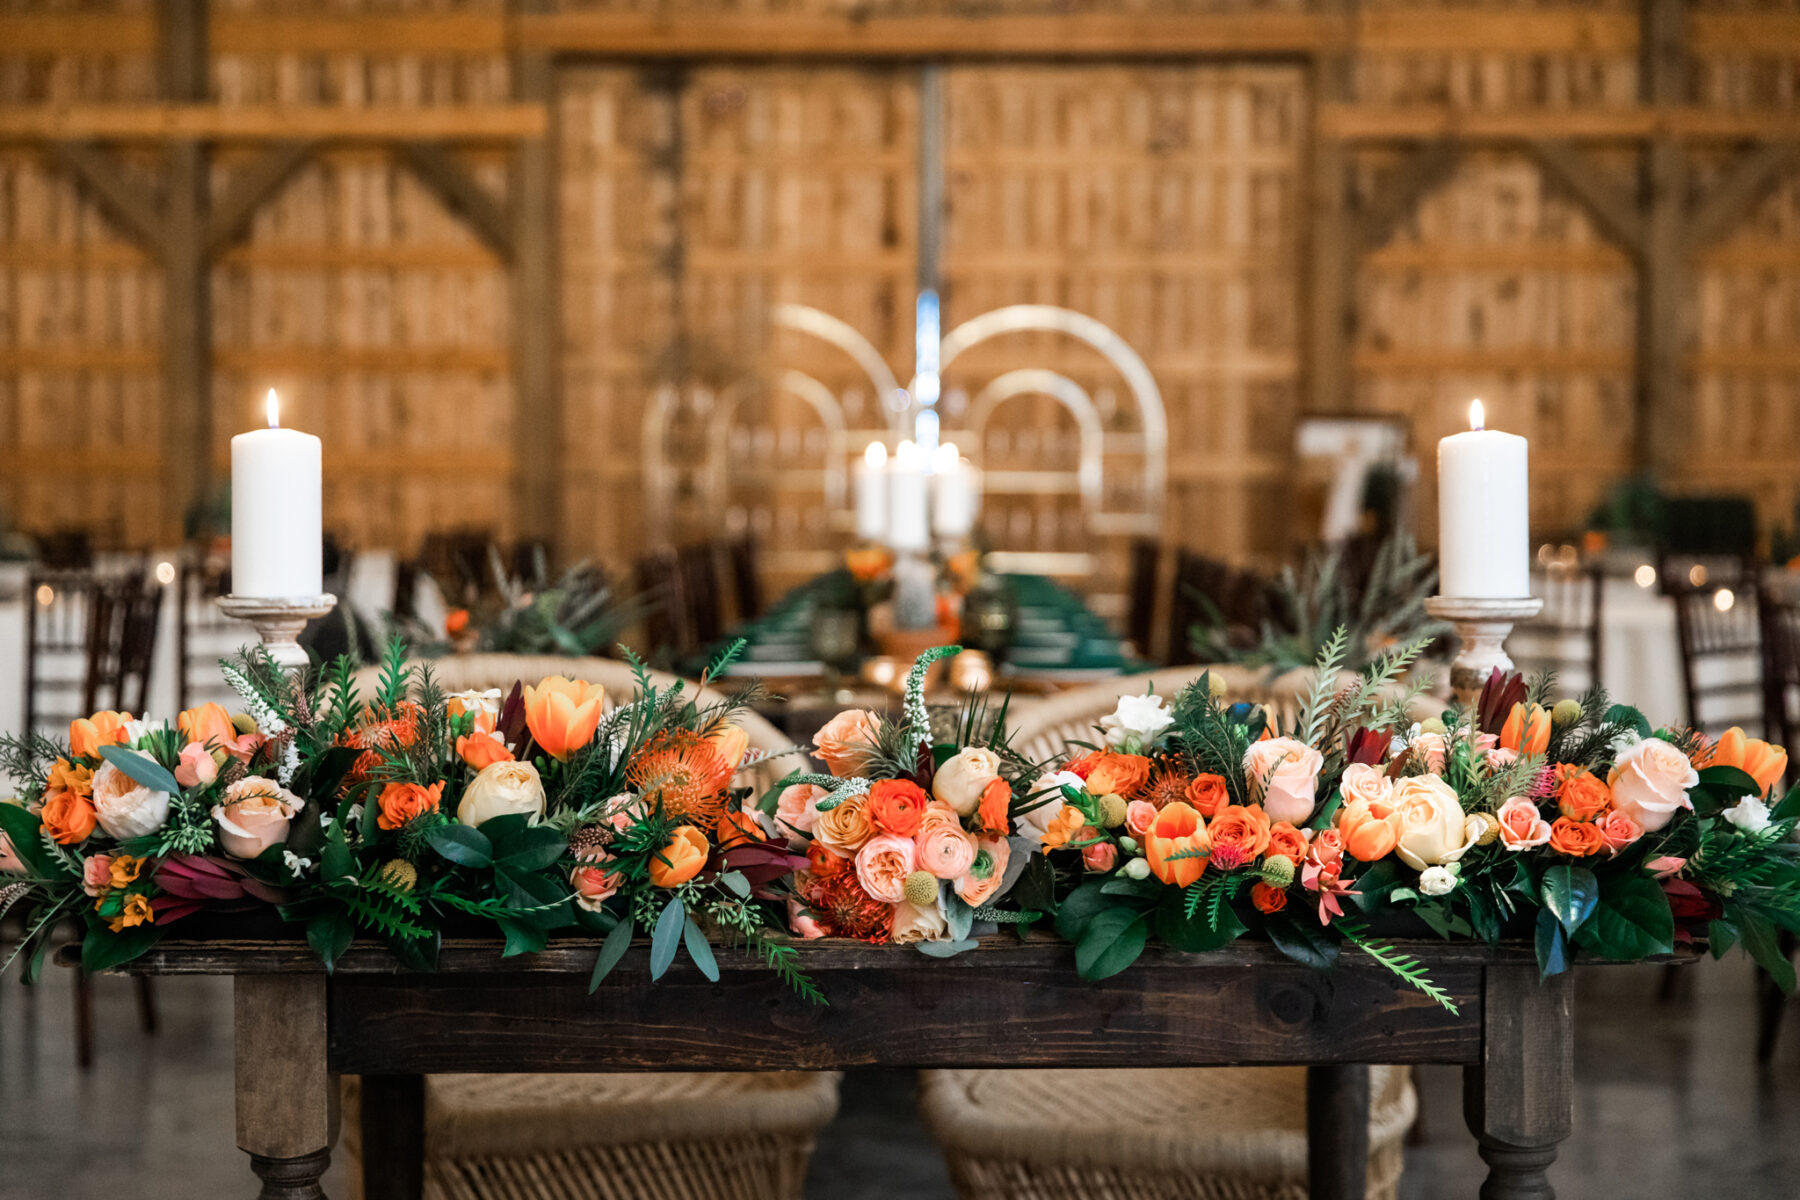 Wedding sweetheart table: Western Inspired Wedding by Laurie D'Anne Events featured on Nashville Bride Guide